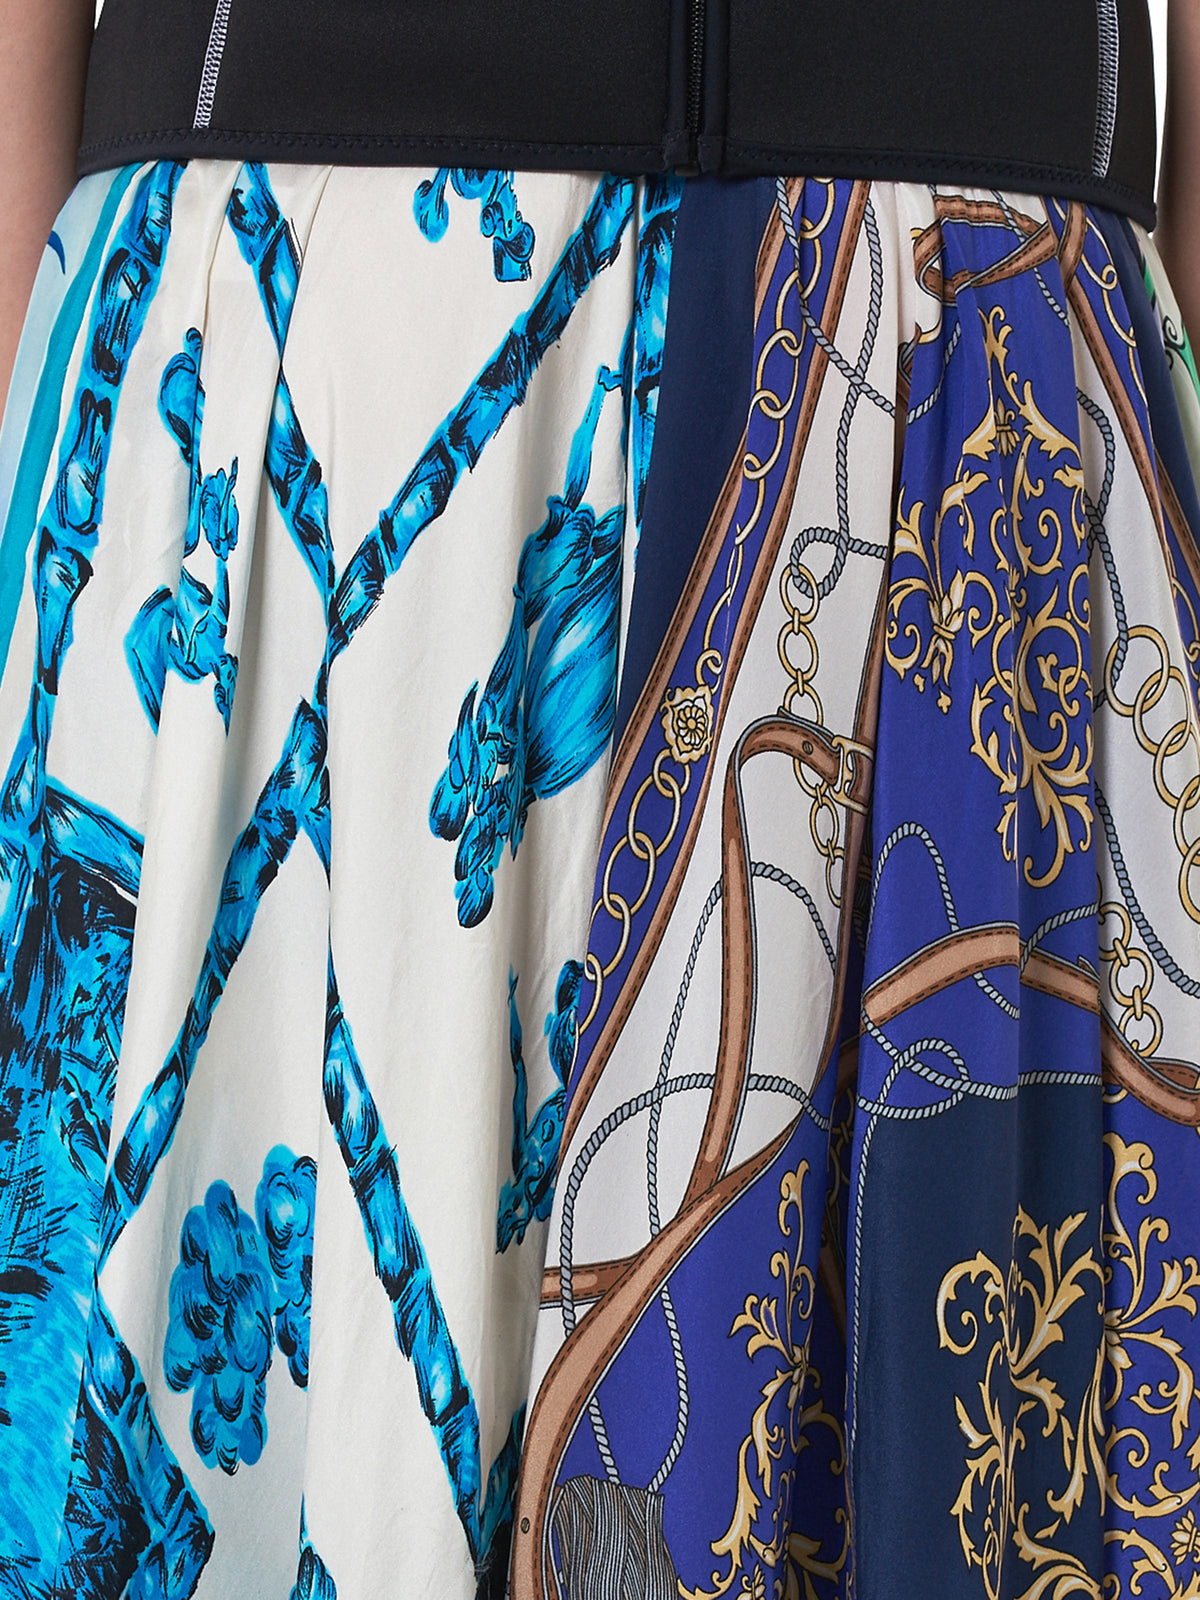 Marine Serre Dress - Hlorenzo Detail 2